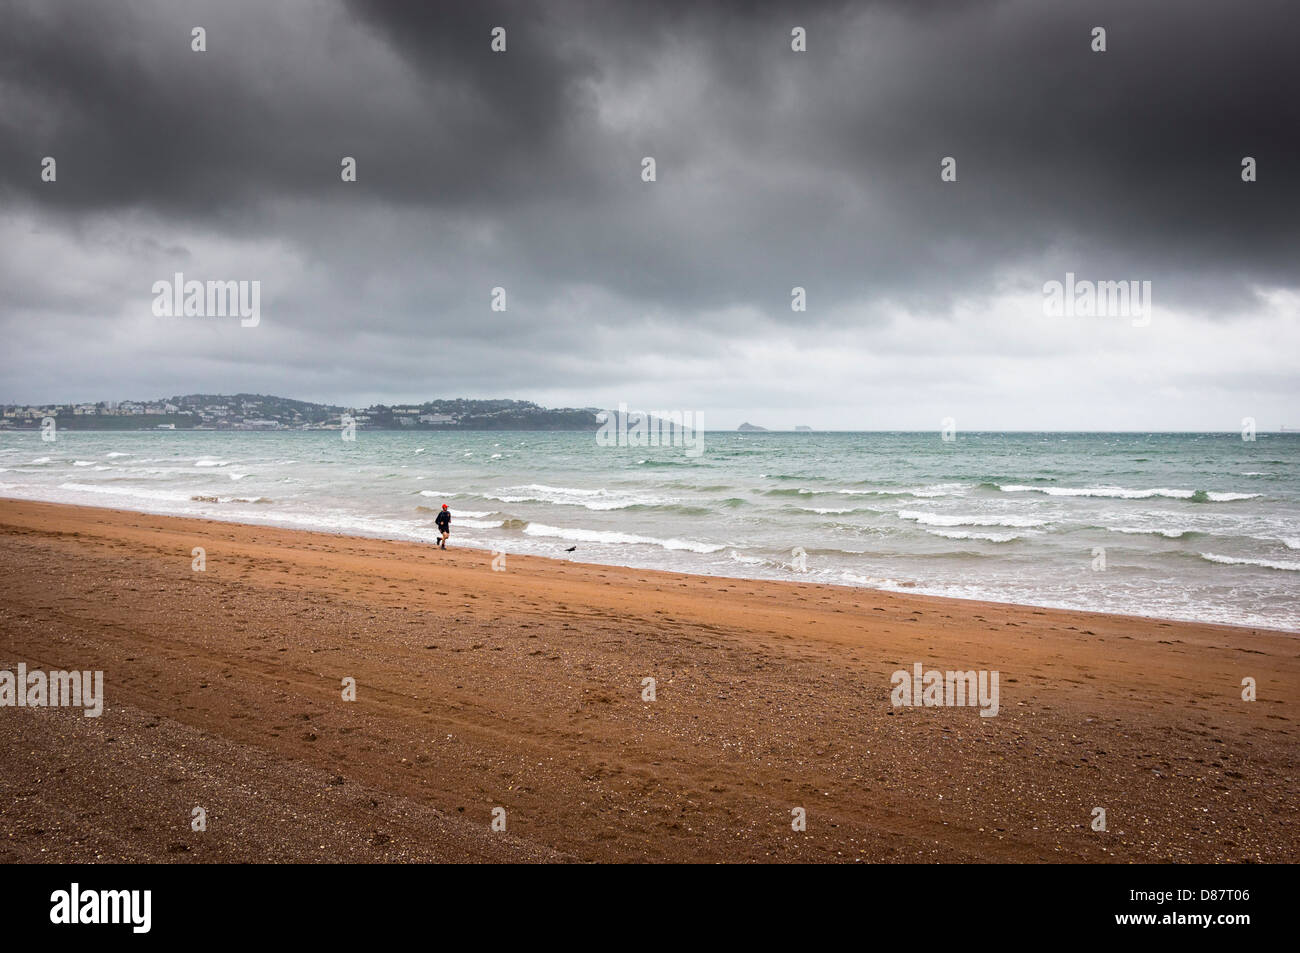 Runner on Paignton Beach in the rain with stormy sky, Devon coast, England, UK in Spring/Summer - Stock Image